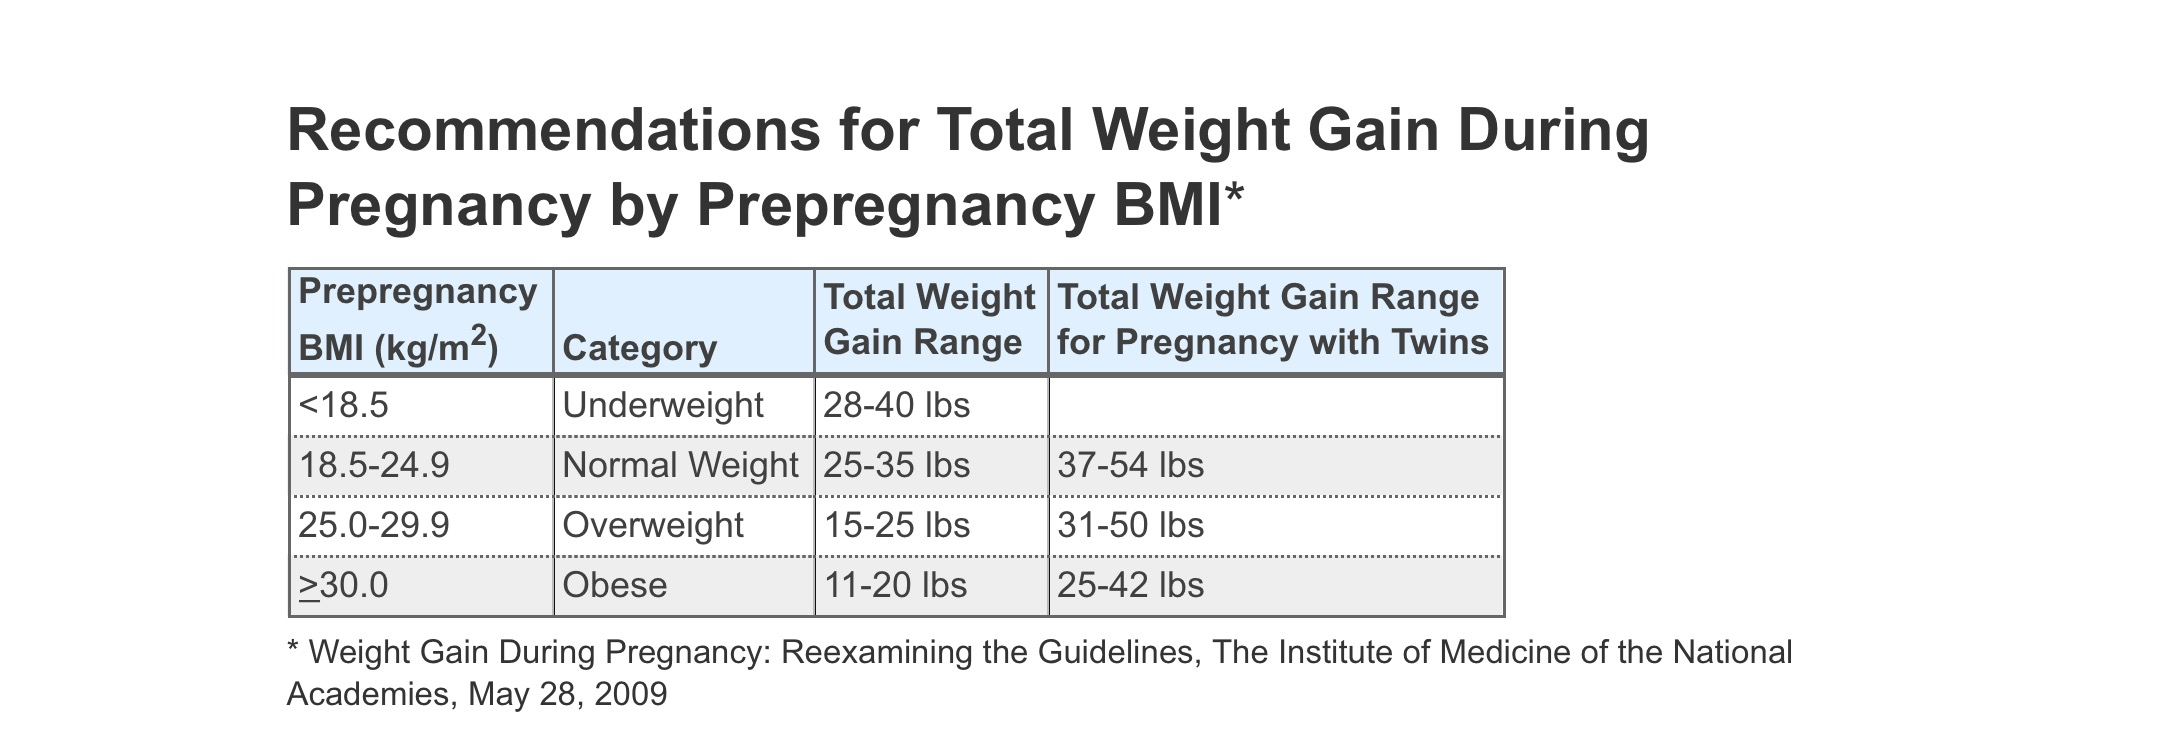 Weight gain before bfp moving forward with positive thinking imageeg 2197k nvjuhfo Images